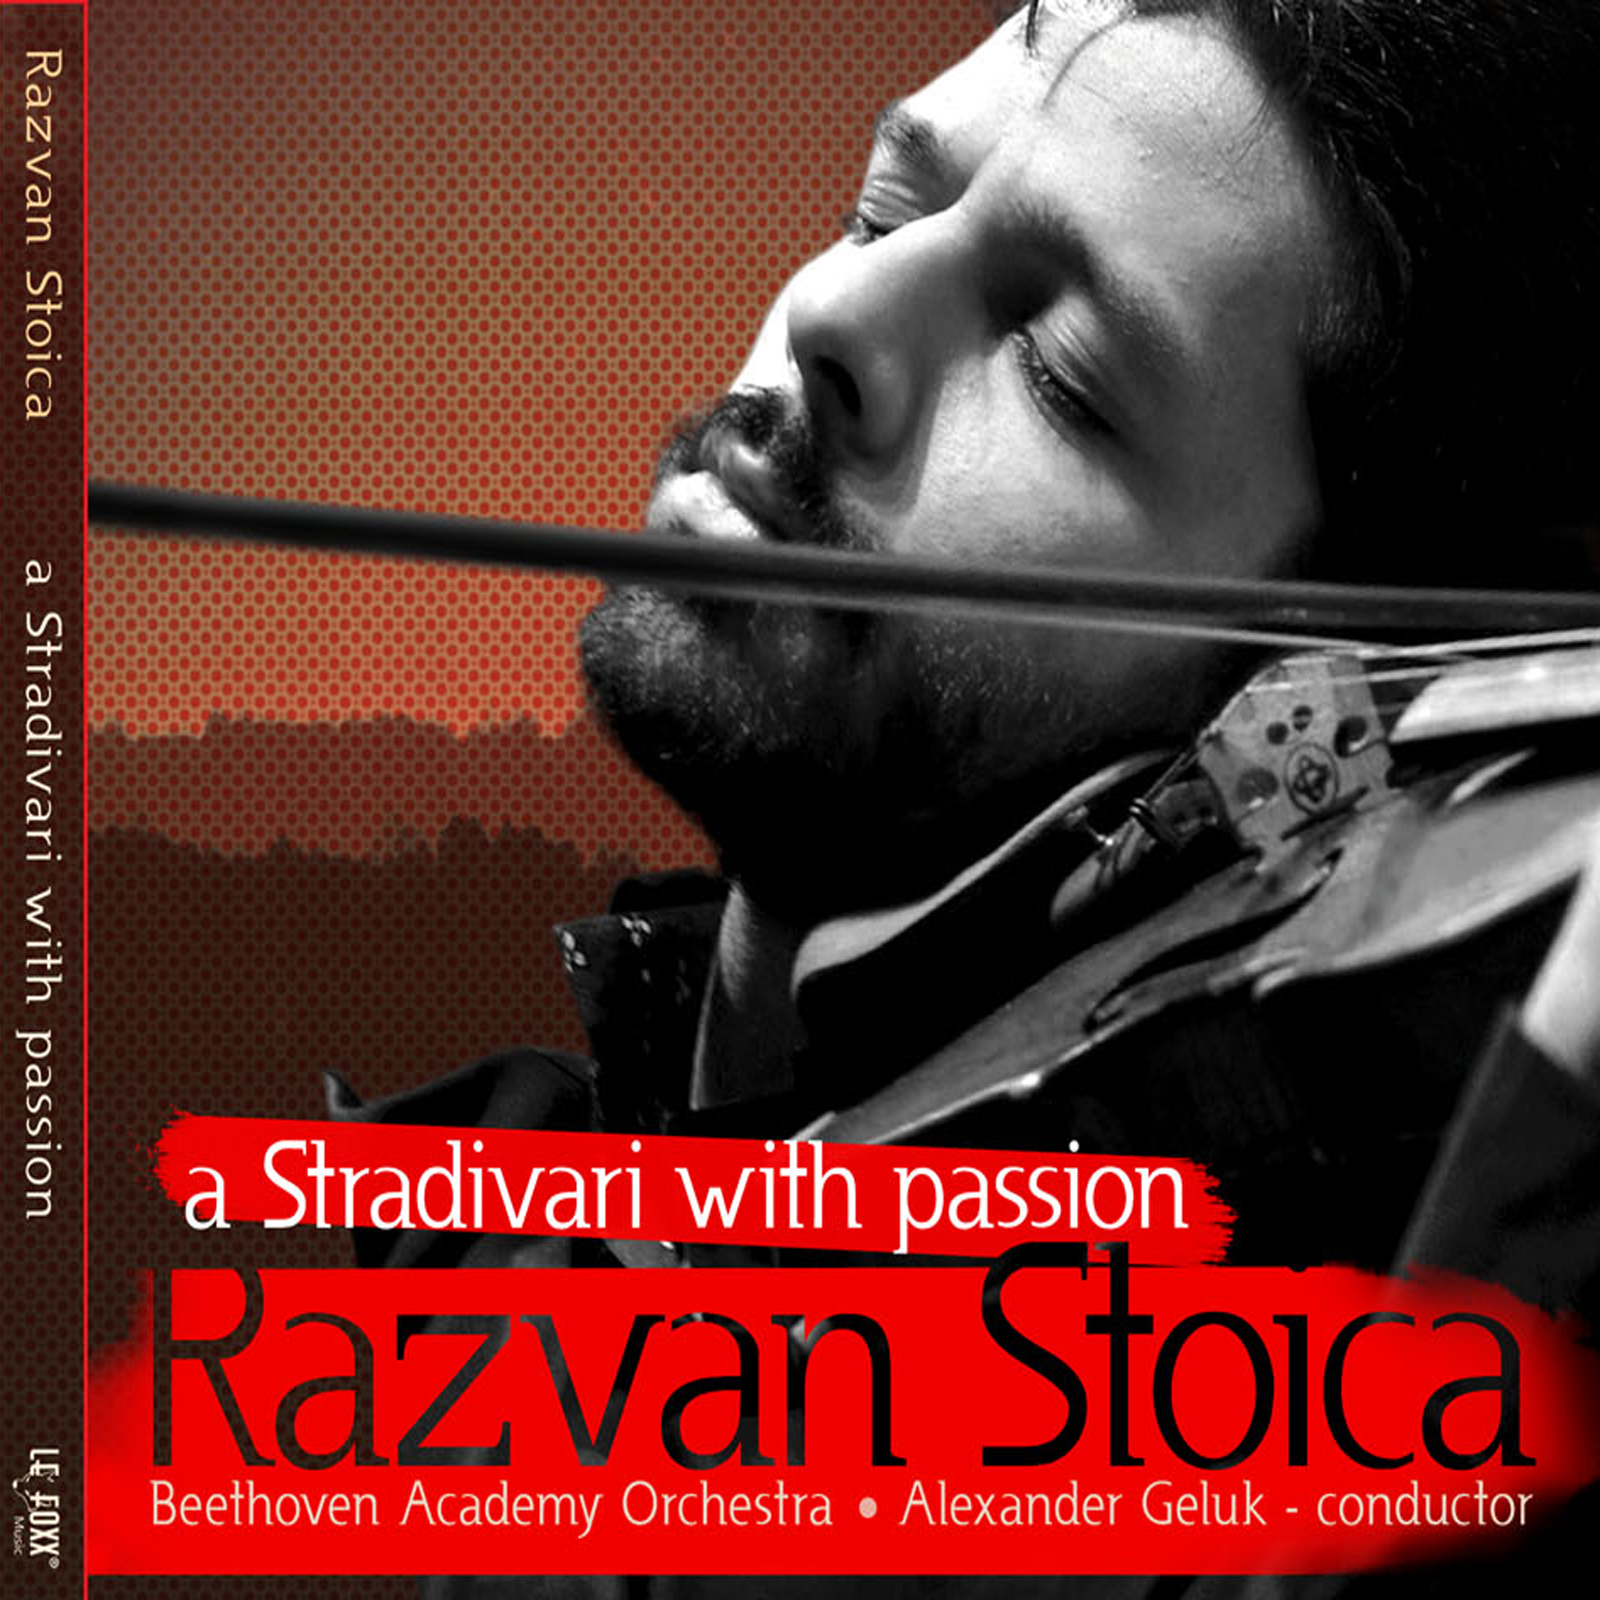 """The Stradivari with Passion"" Beethoven Academy Orchestra, (2010)"